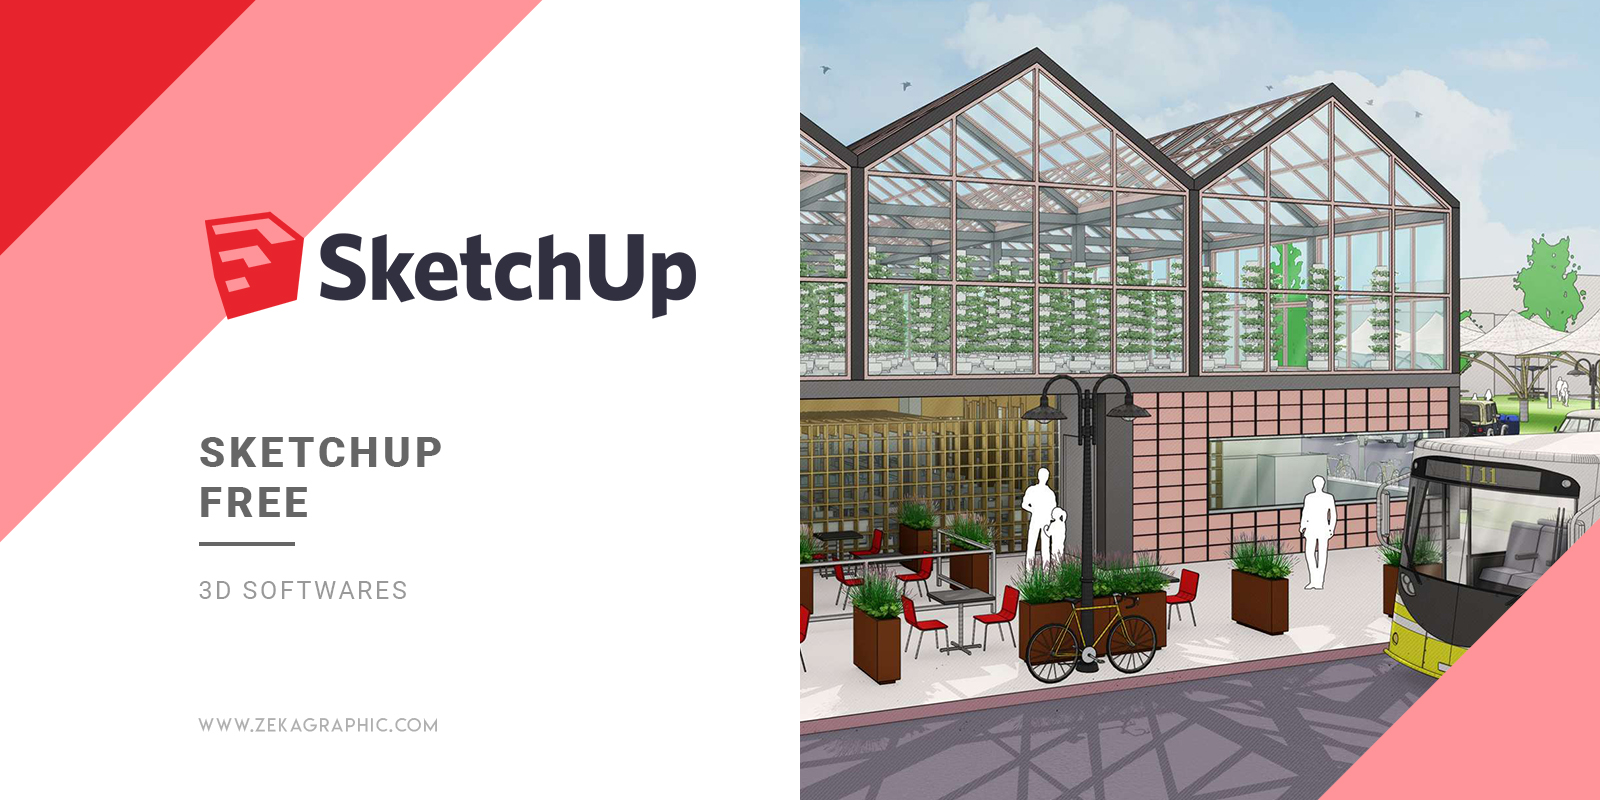 SketchUp Free 3D Software for Graphic Design